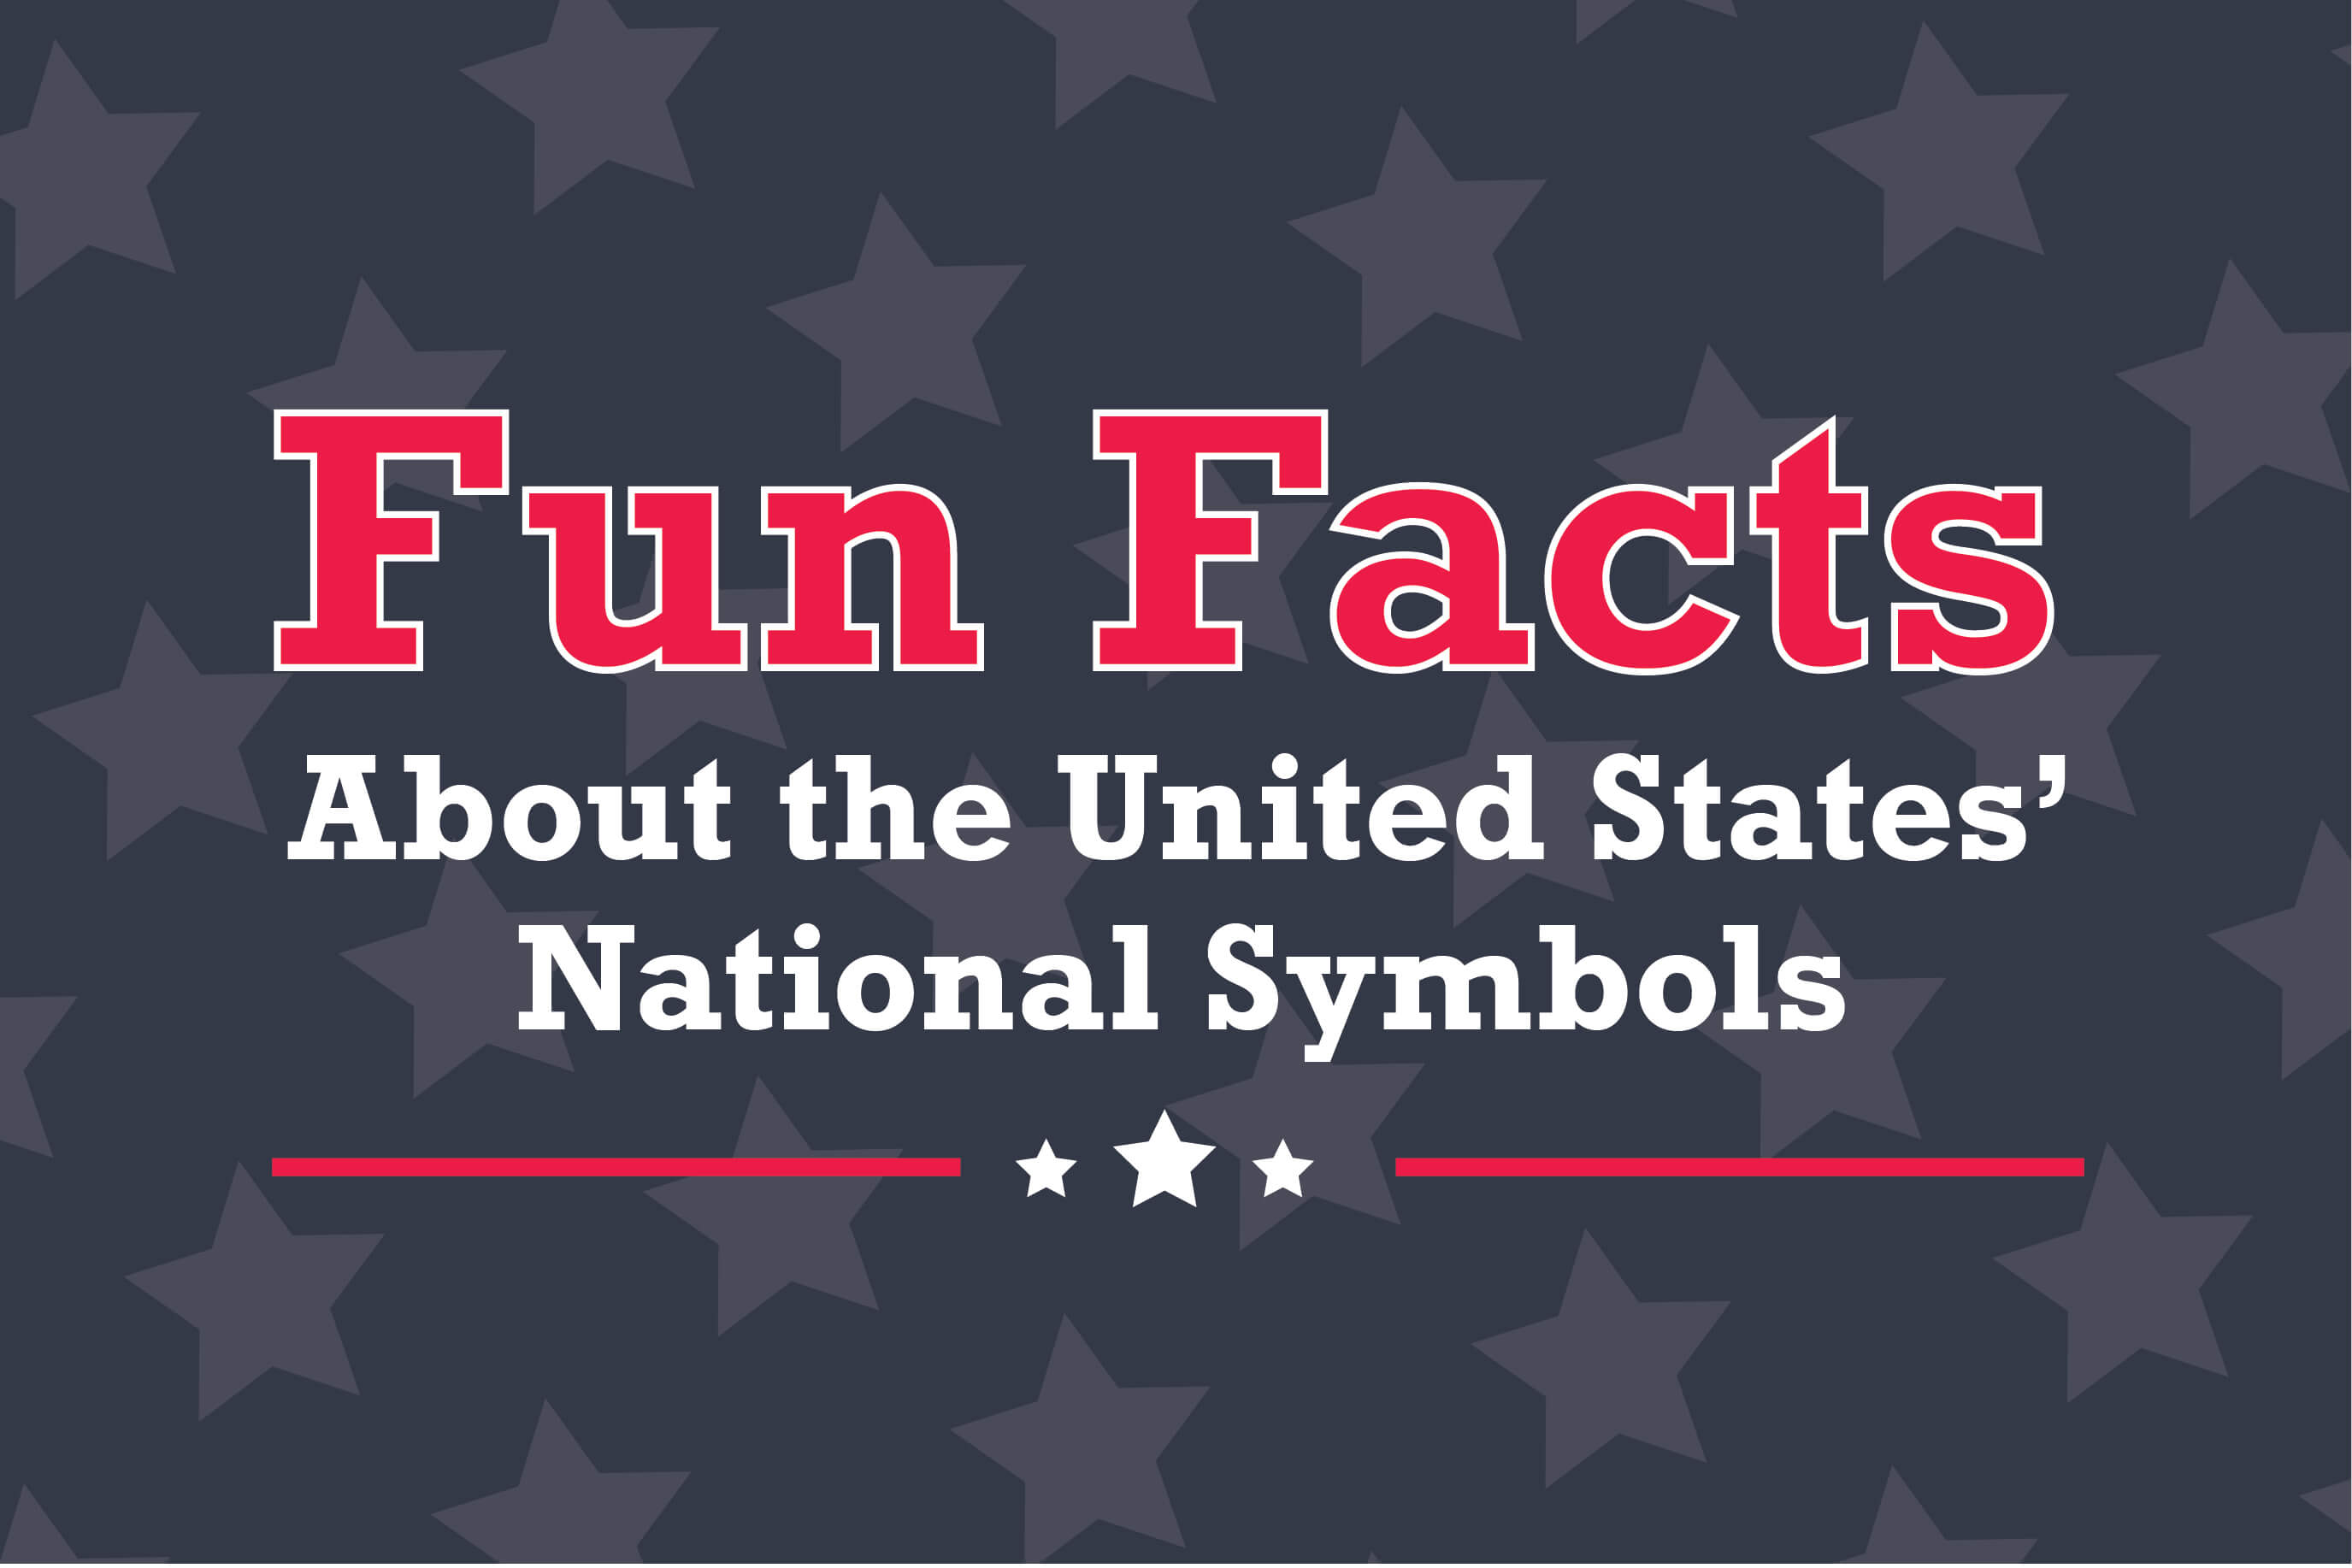 Direct General Auto Insurance >> 9 National Symbols of the USA & Fun Facts [INFOGRAPHIC]   Direct Auto